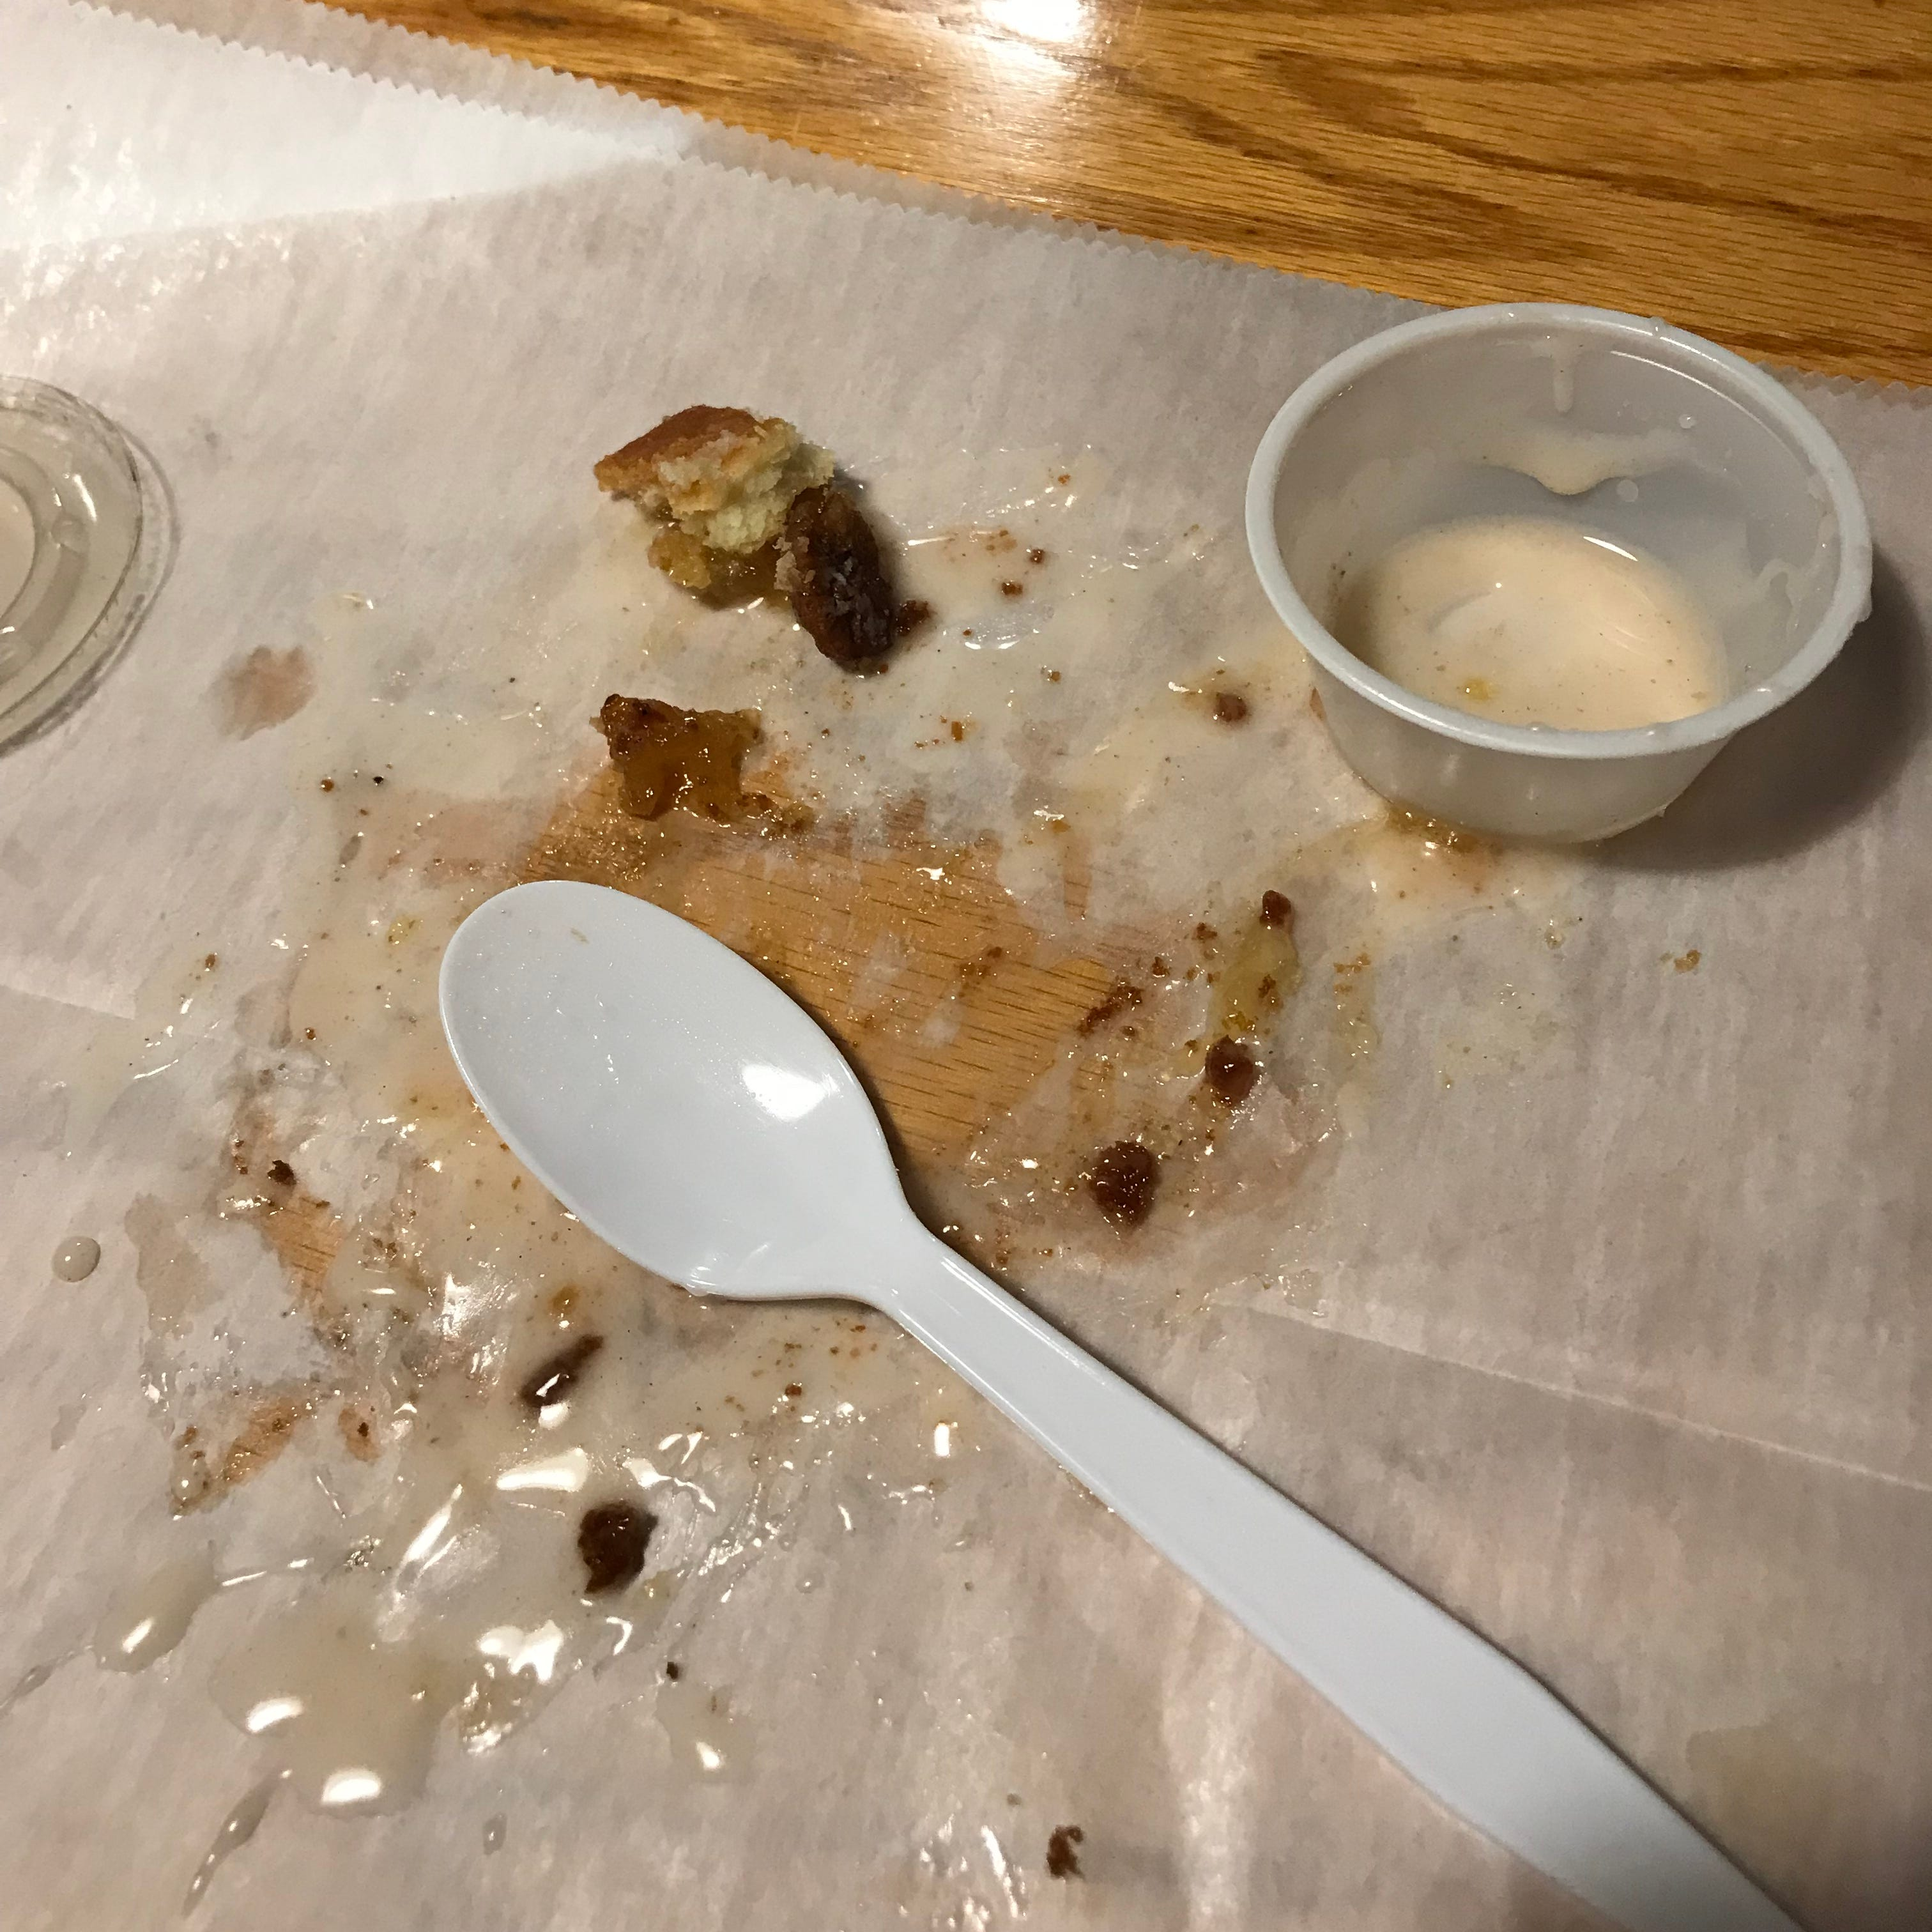 A slice of deep fried pecan pie didn't last long at South Street Smokehouse.